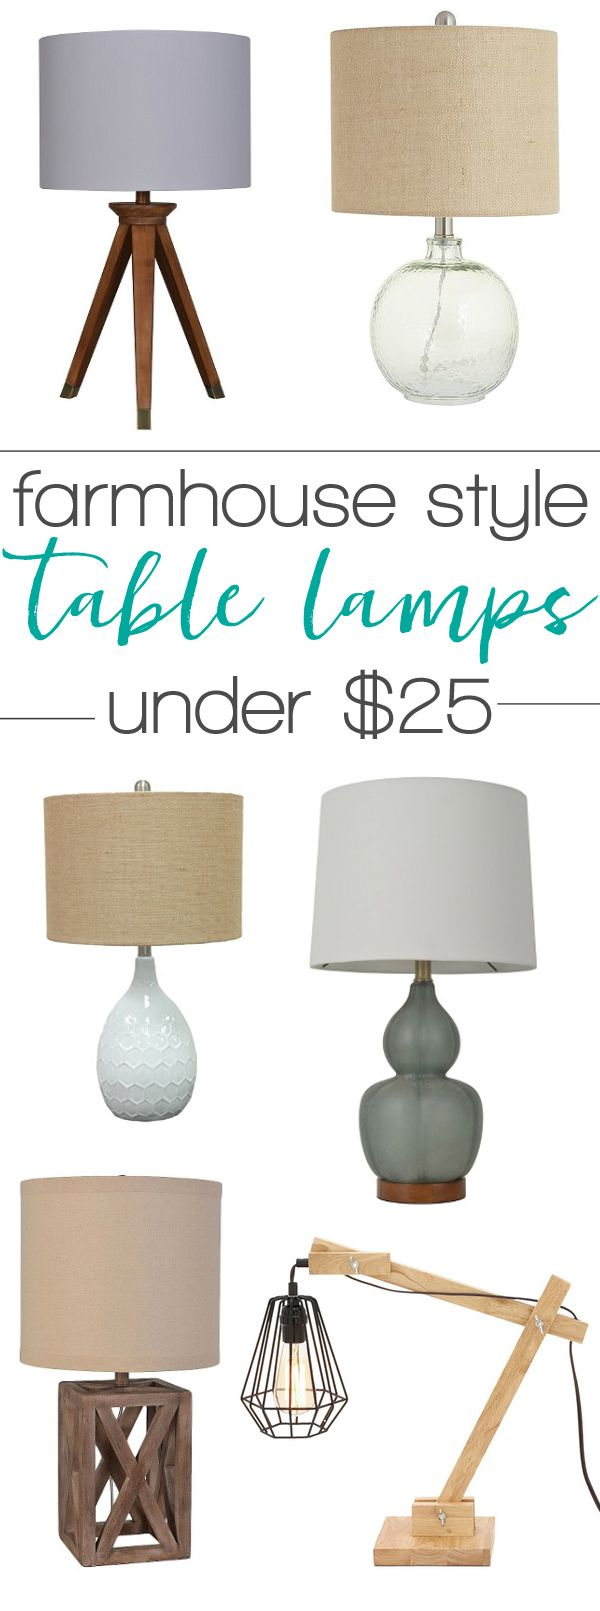 Best 25 farmhouse lamps ideas on pinterest farmhouse table farmhouse style lamps under 50 geotapseo Images